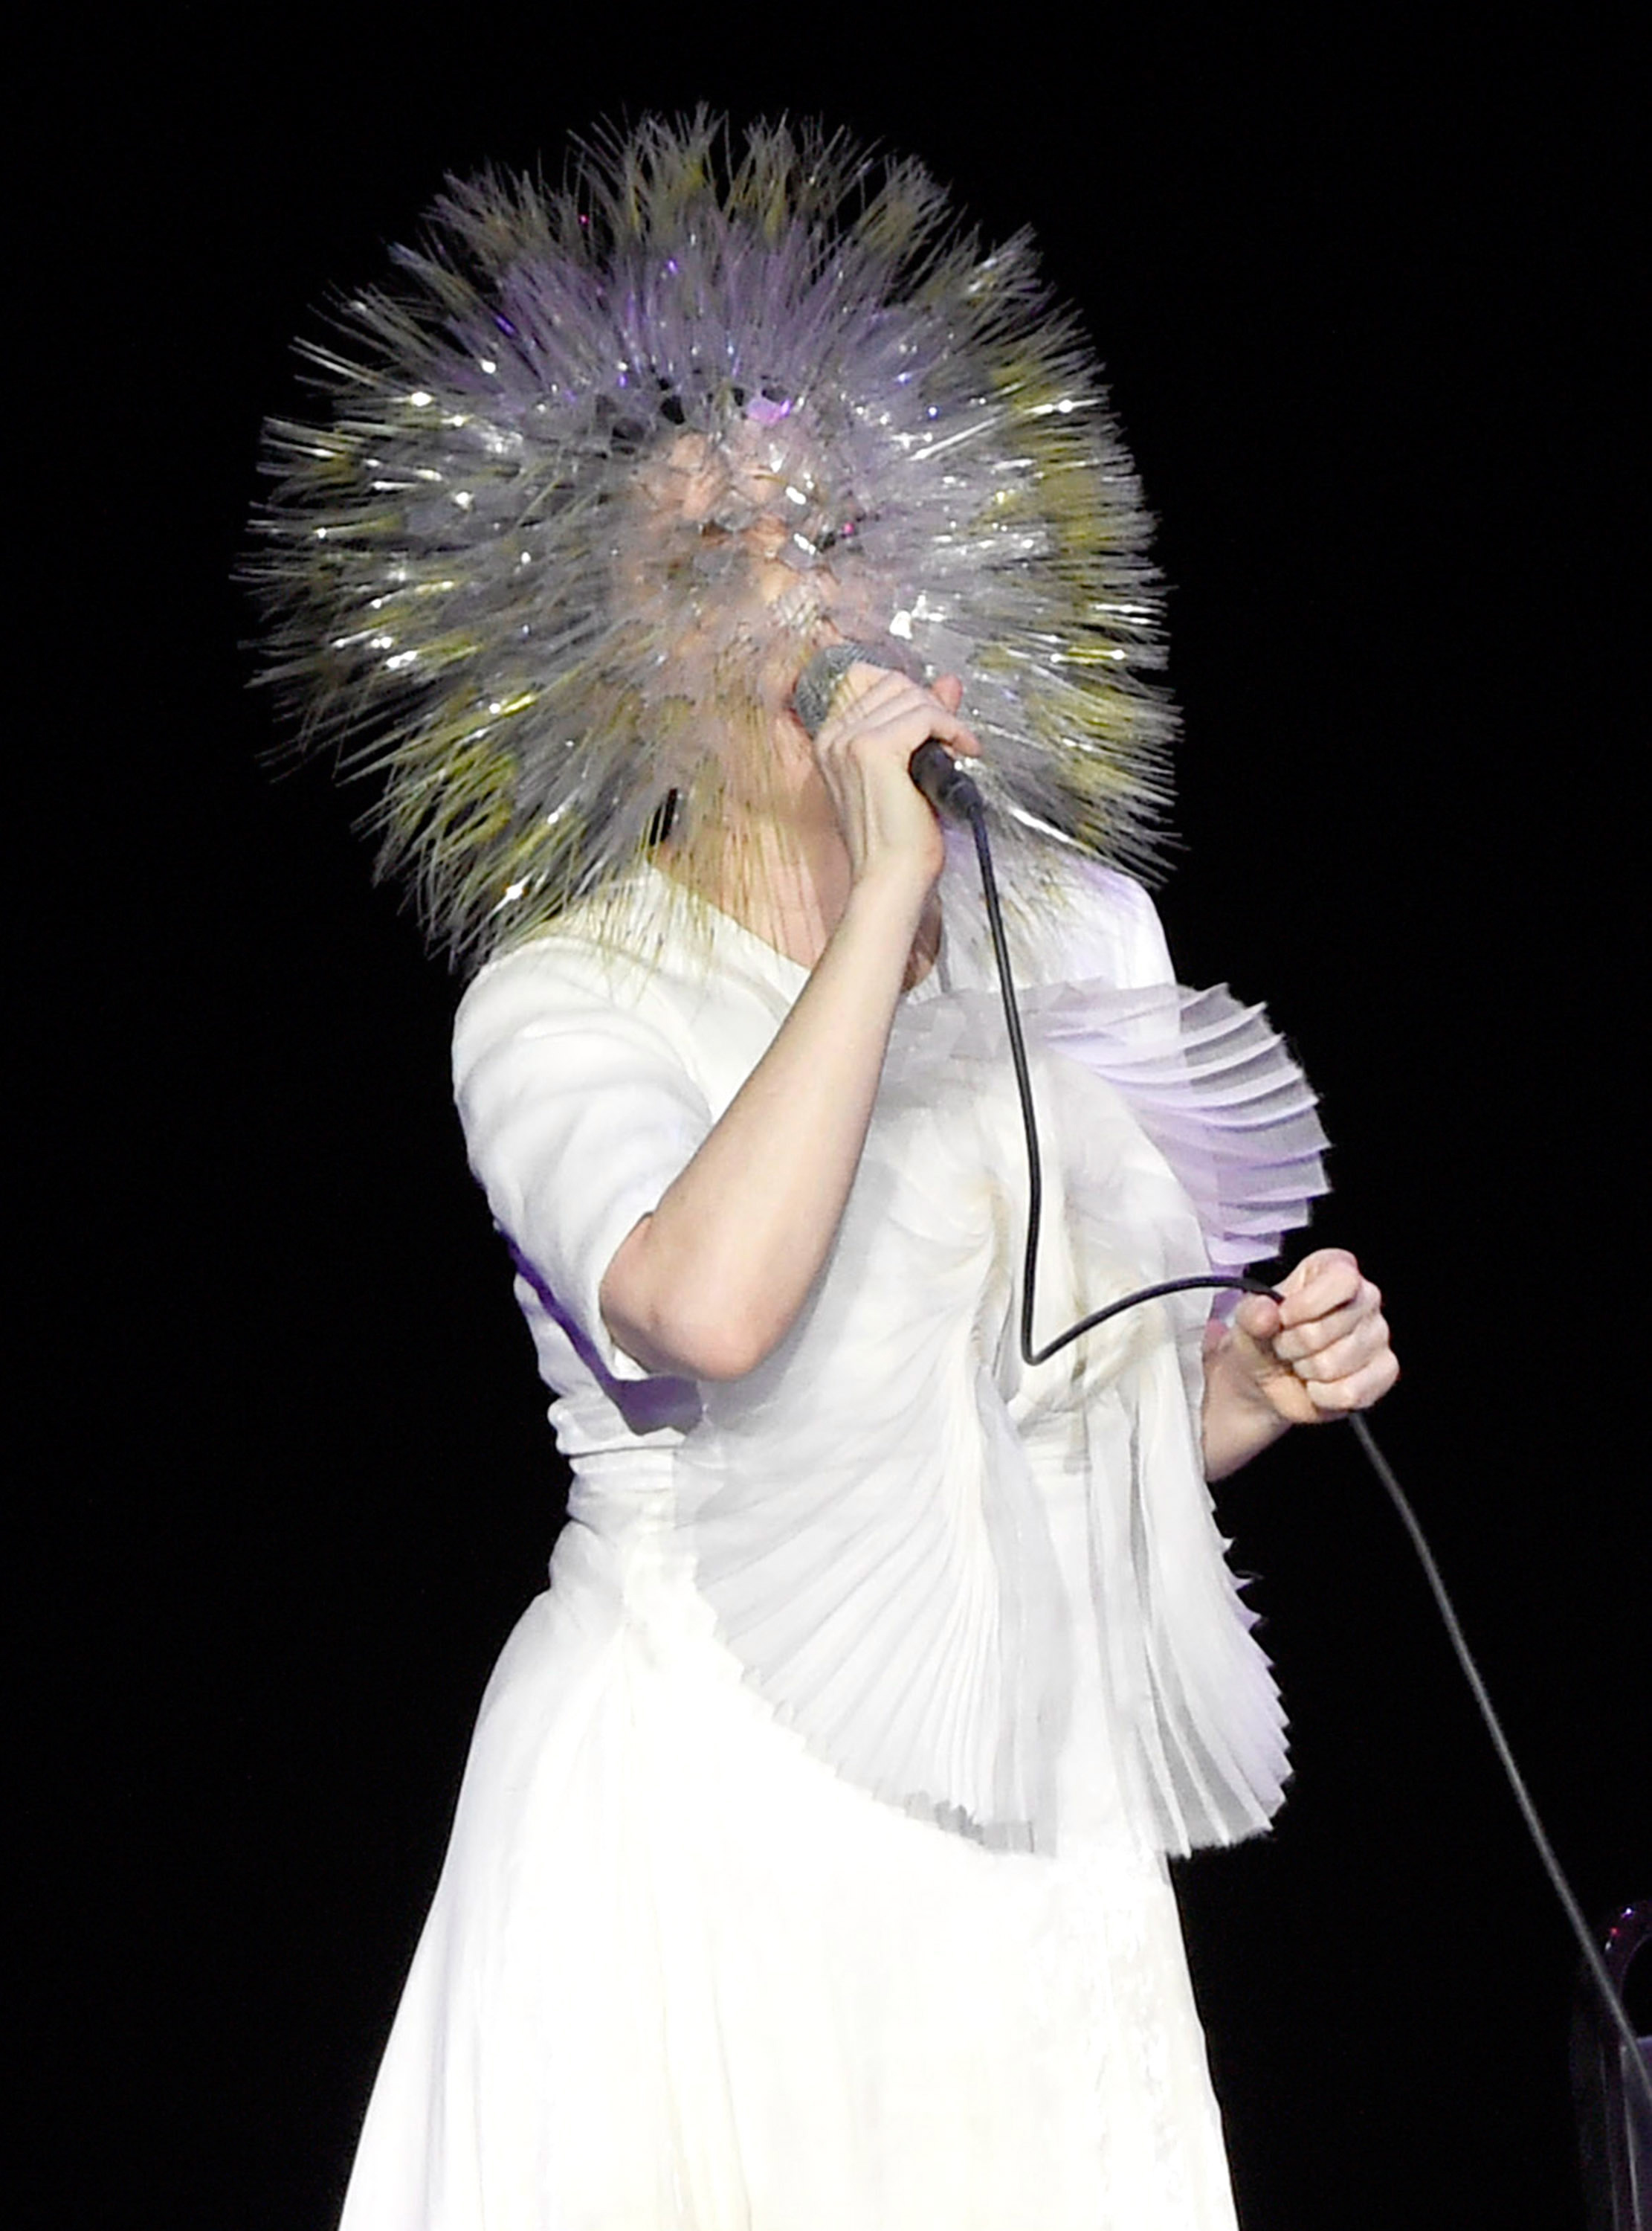 Björk performs onstage during her 'Vulnicura' tour at Kings Theatre in Brooklyn, N.Y. on March 18, 2015.